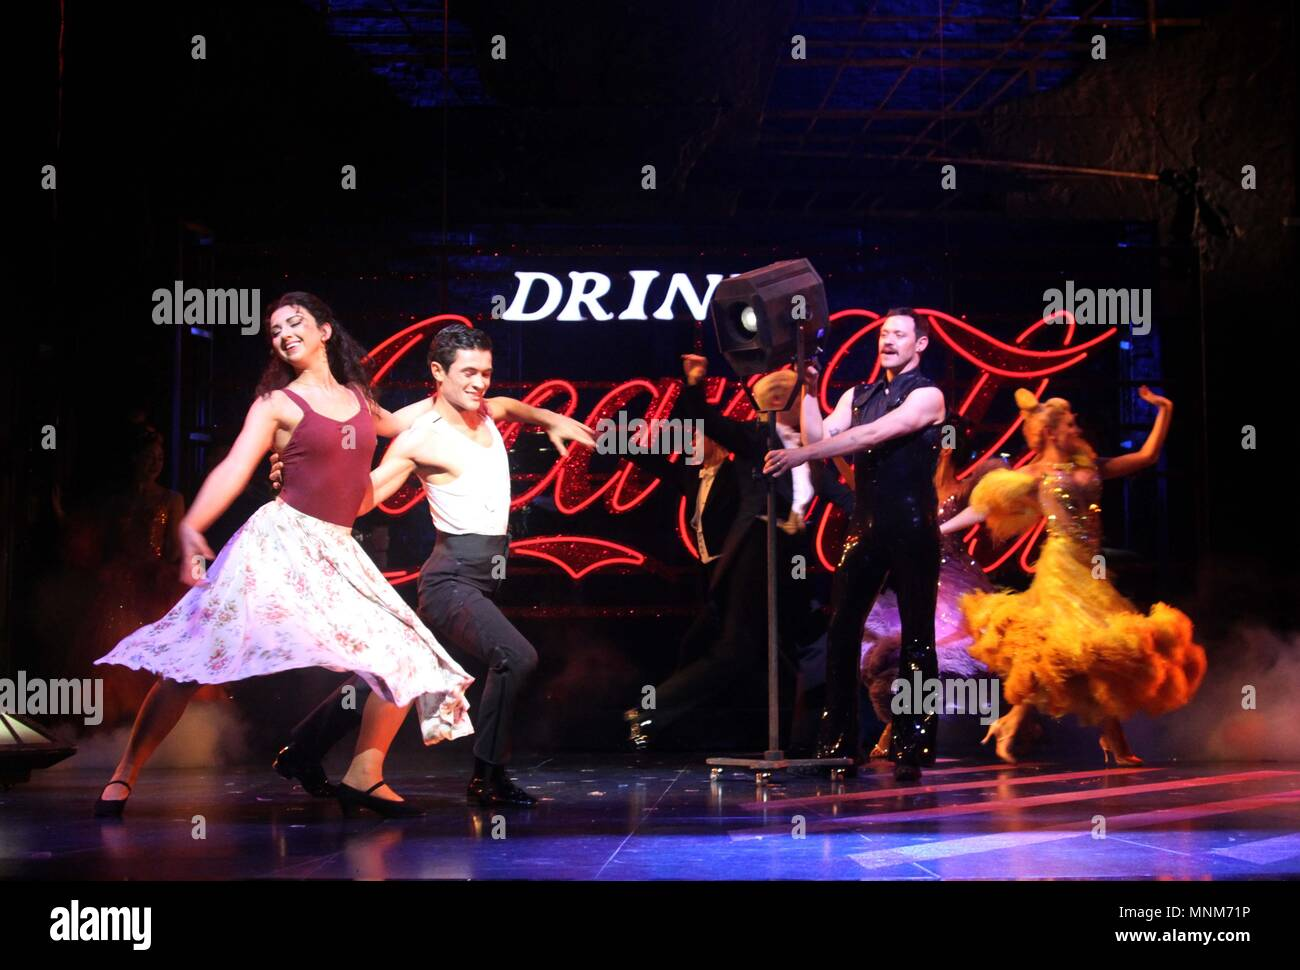 scott strictly ballroom